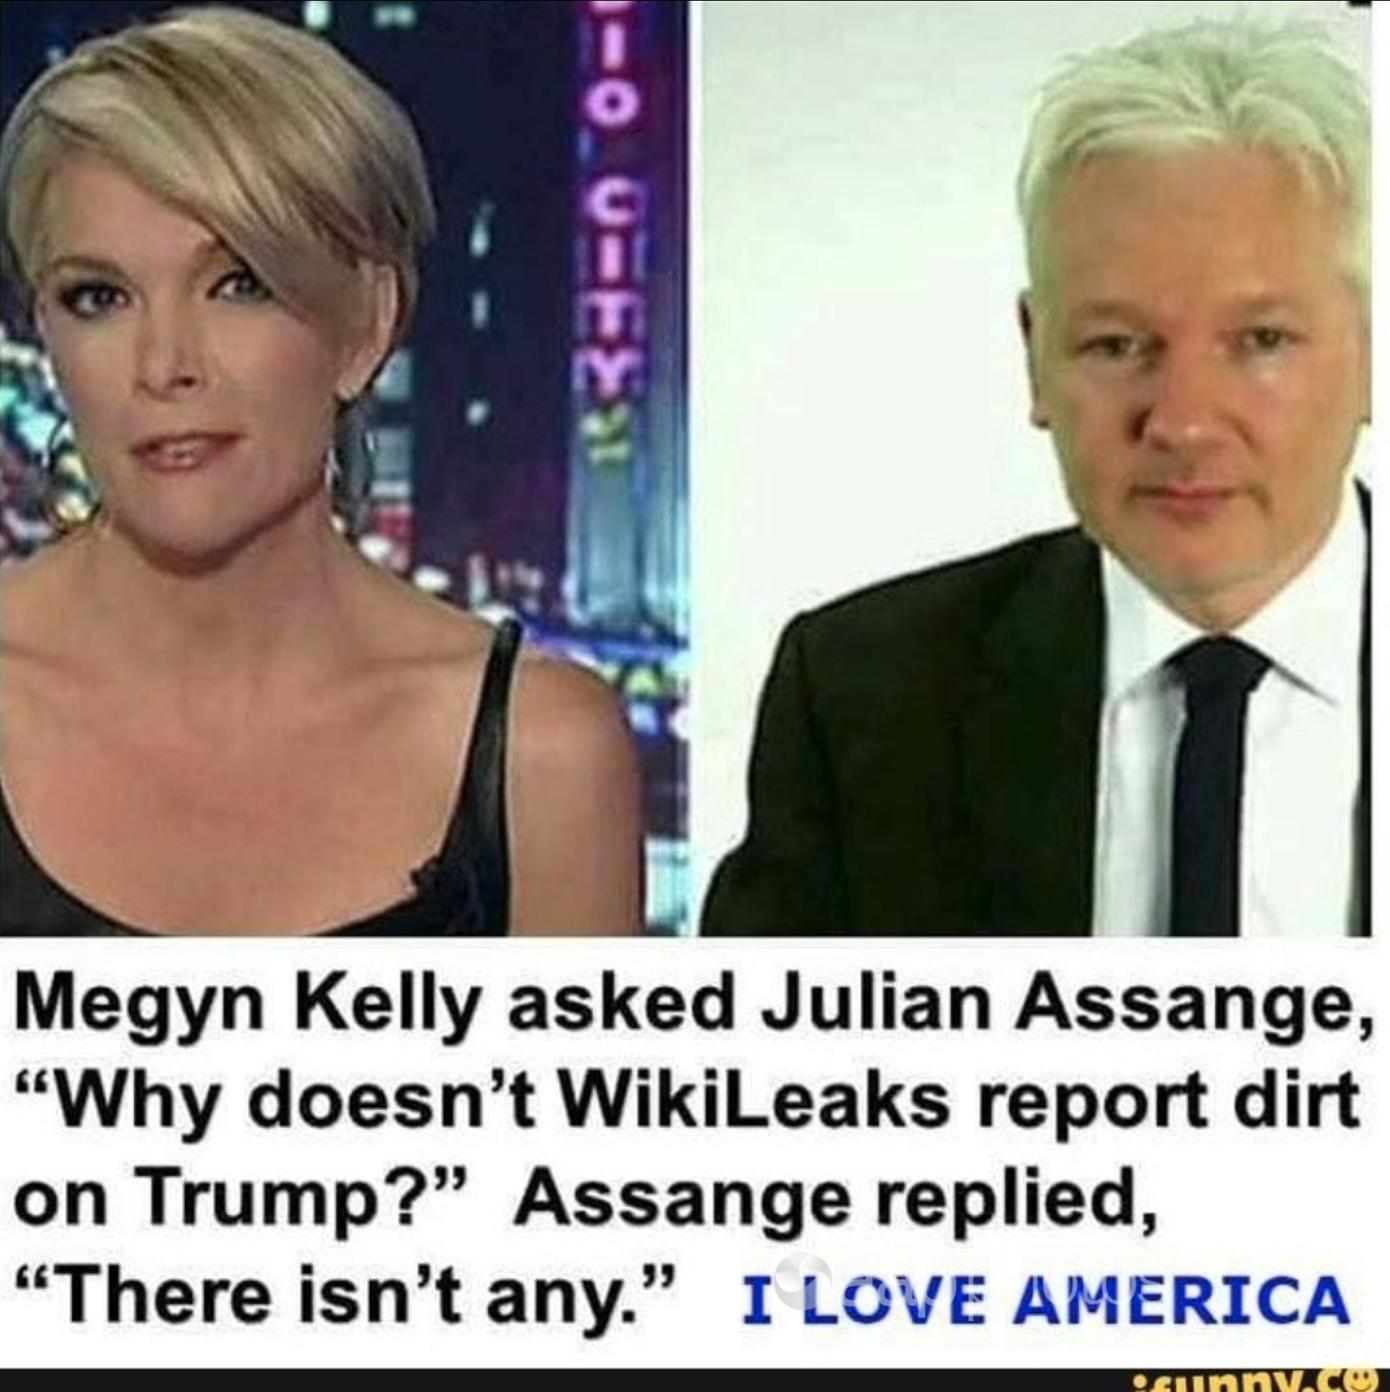 The meme with Julian Assange's purported comments on Trump